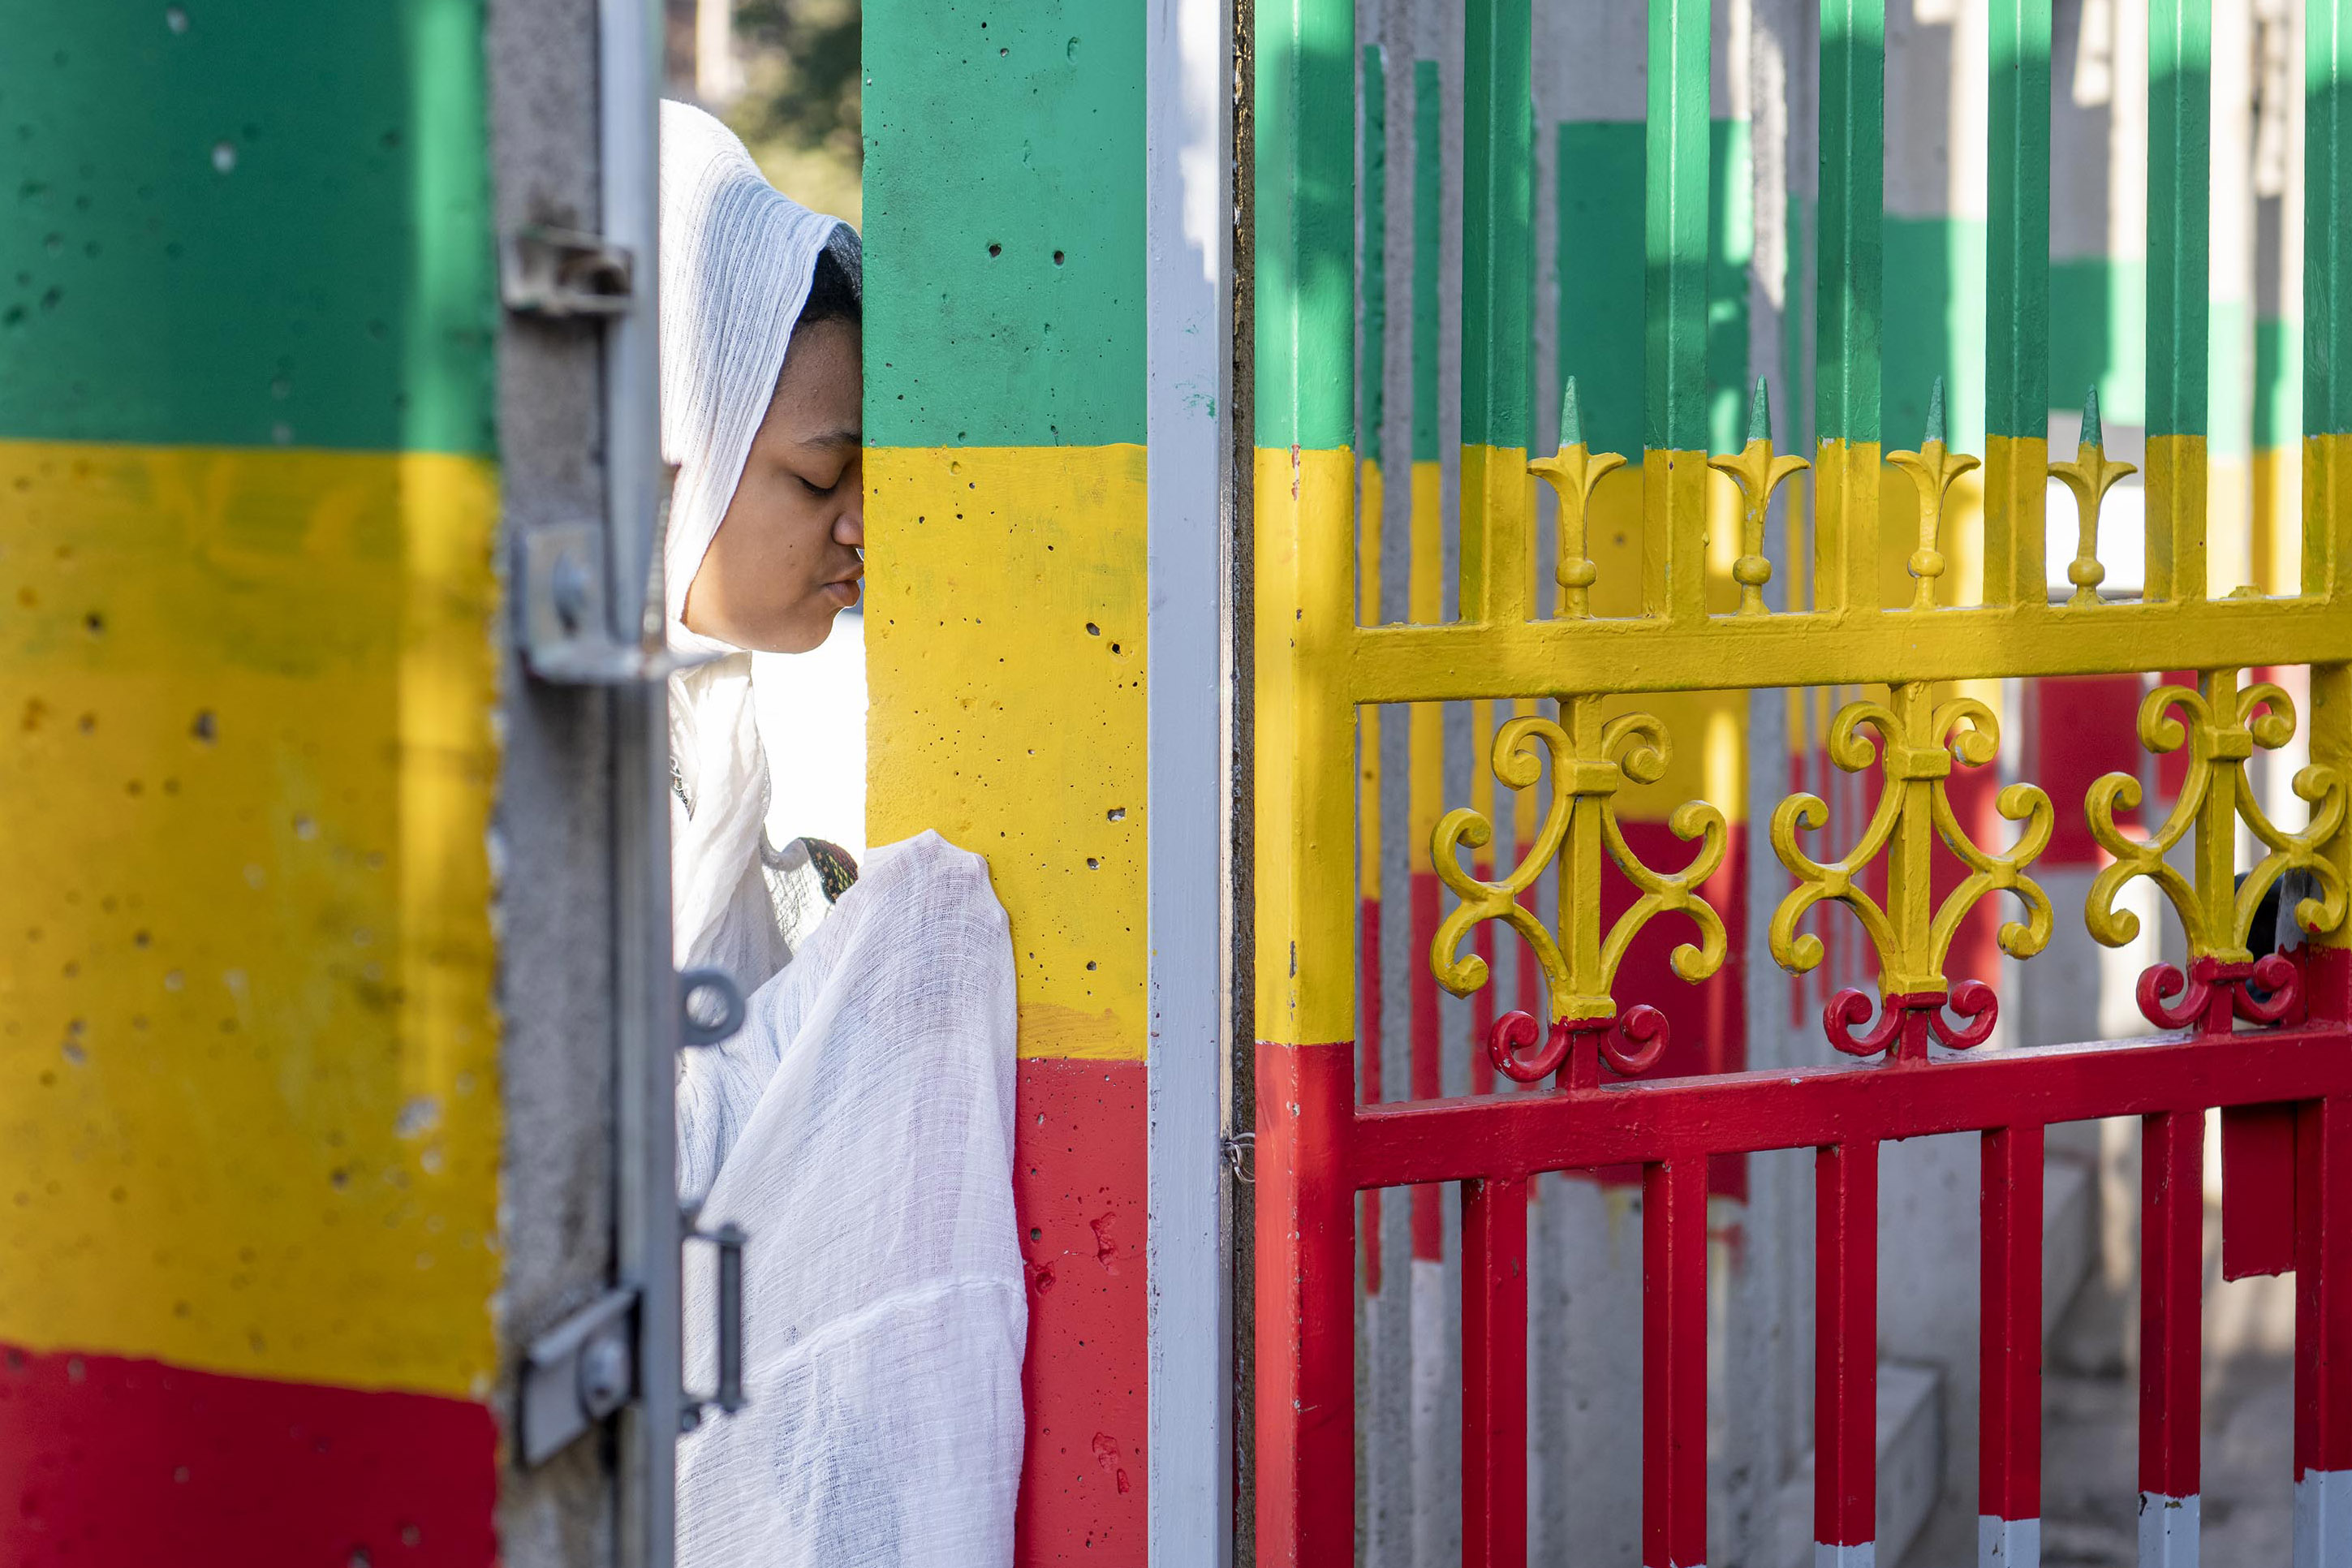 12 September 2019: An Ethiopian woman saying a prayer at the gate of the Ethiopian Orthodox Tewahedo Church.